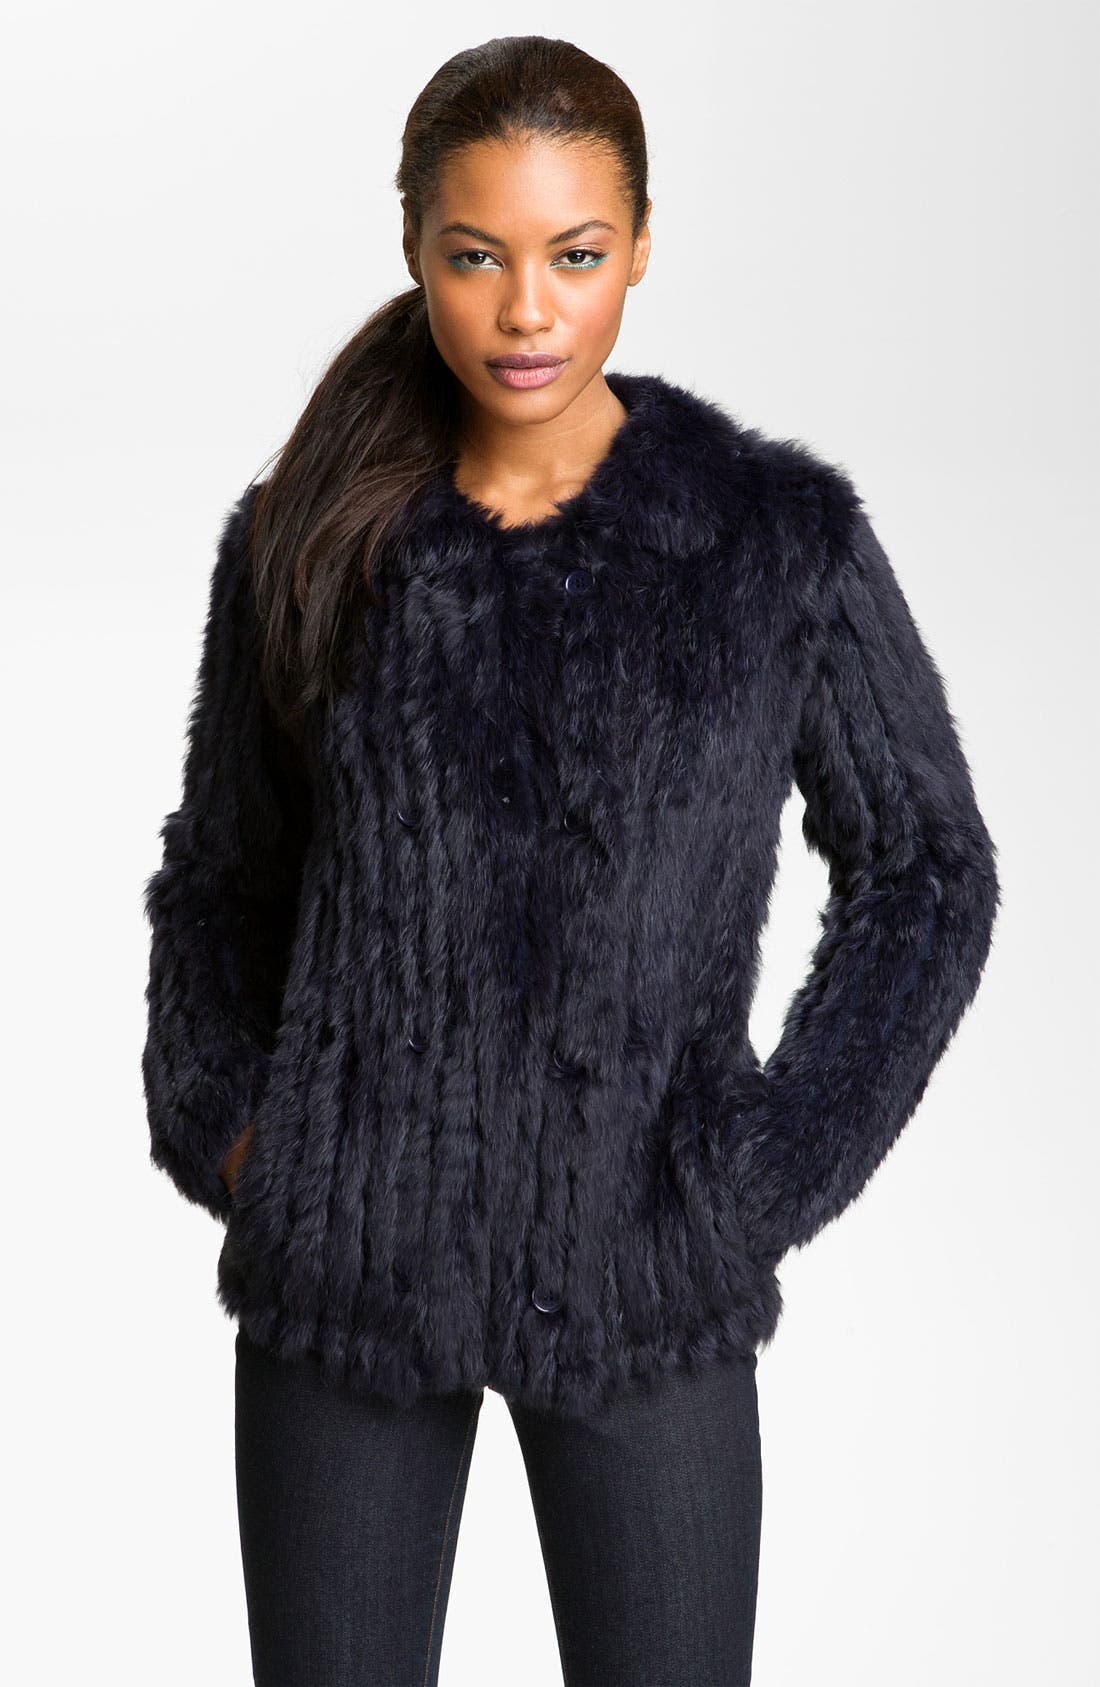 Main Image - MARC BY MARC JACOBS 'Katrina' Genuine Rabbit Fur Jacket